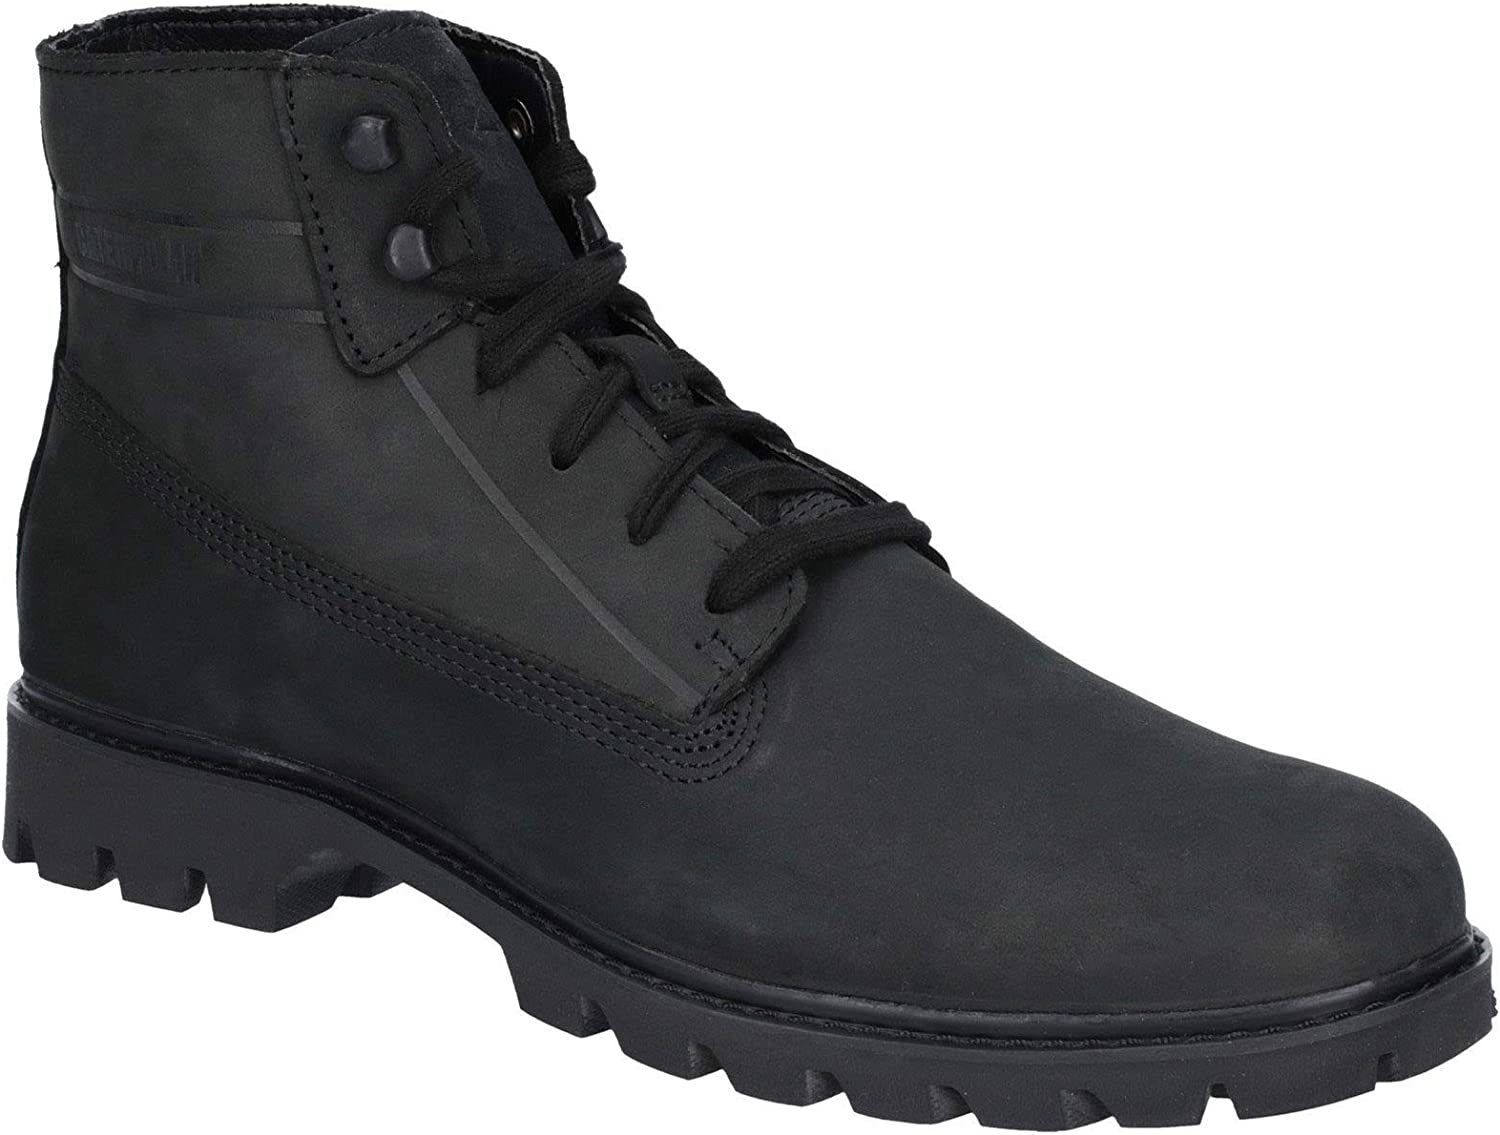 CAT Lifestyle Mens Basis Lace Up Boot Black Size UK 12 EU 46